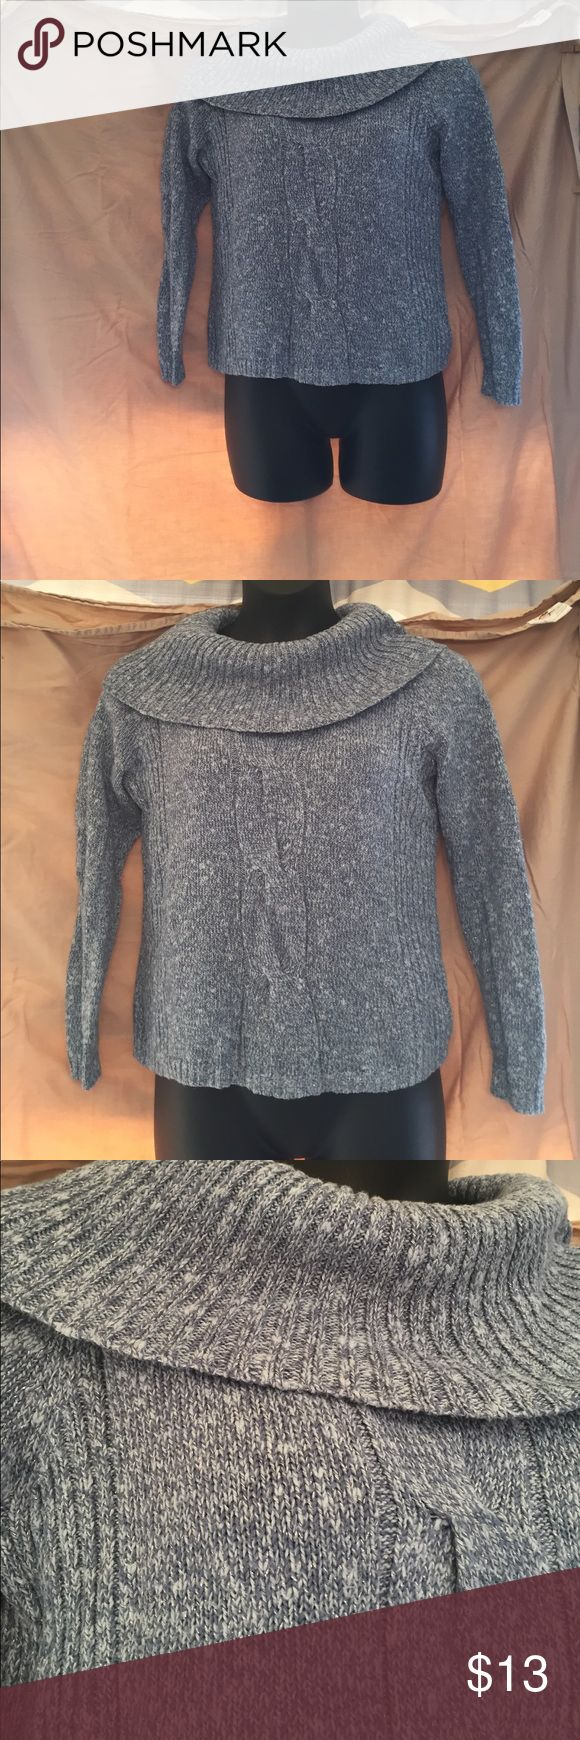 Sag Harbor Cowl Neck Sweater Worn once. No flaws. Sparkly silver thread mixed in with blue. Cowl Neck. Sag Harbor Sweaters Cowl & Turtlenecks